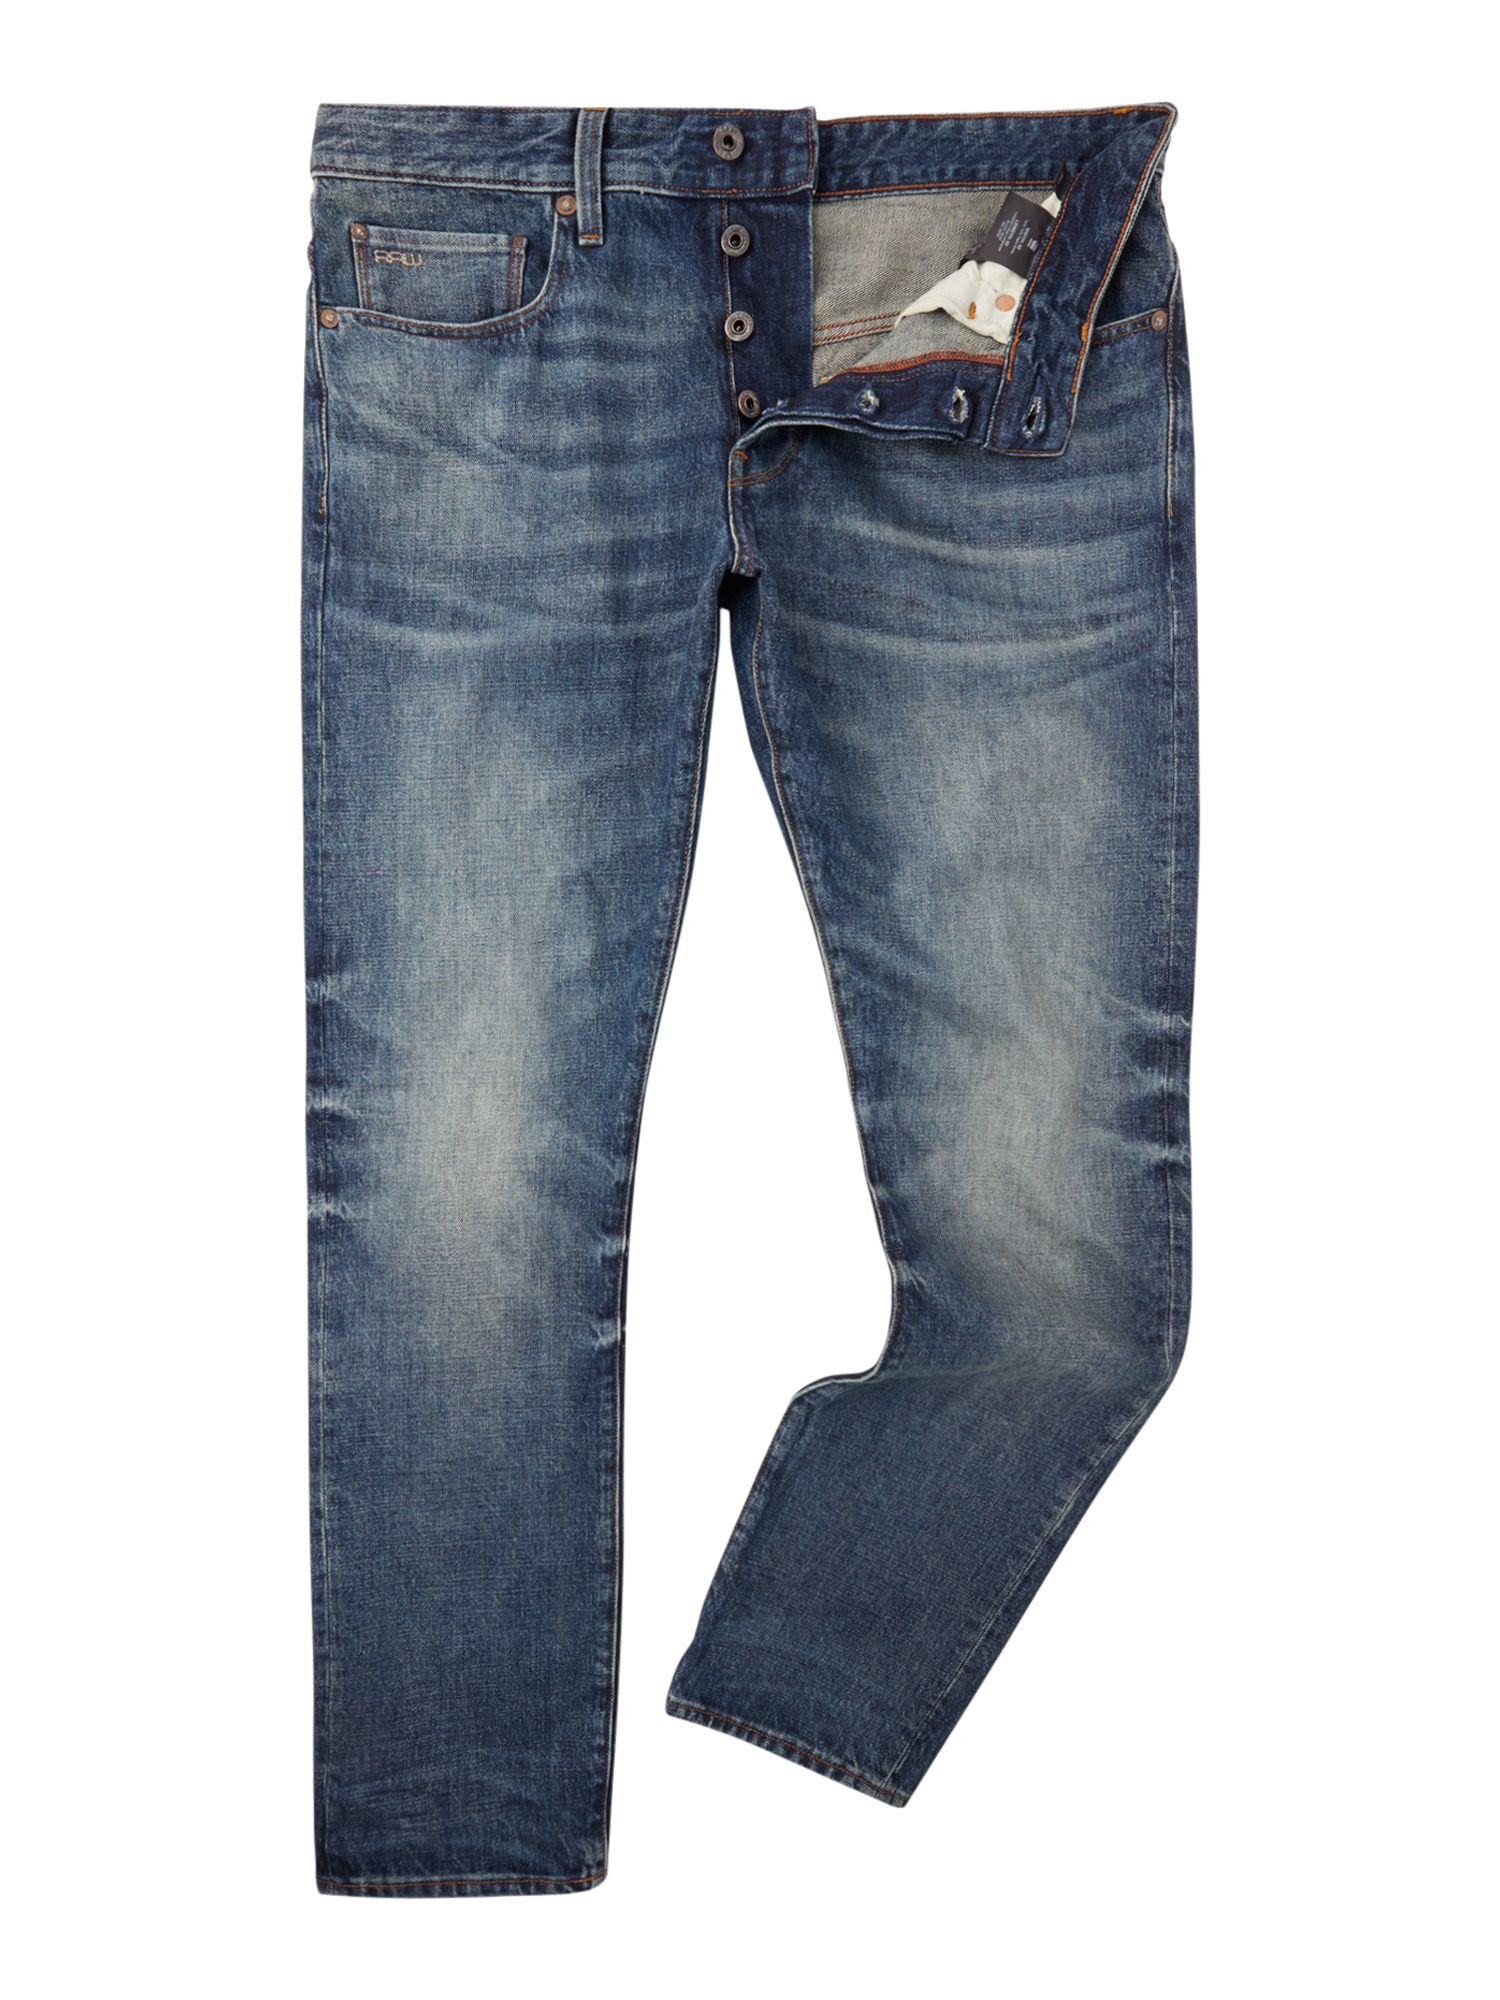 Mens G-star 3301 Tapered Herf Denim Jeans, Denim Mid Wash